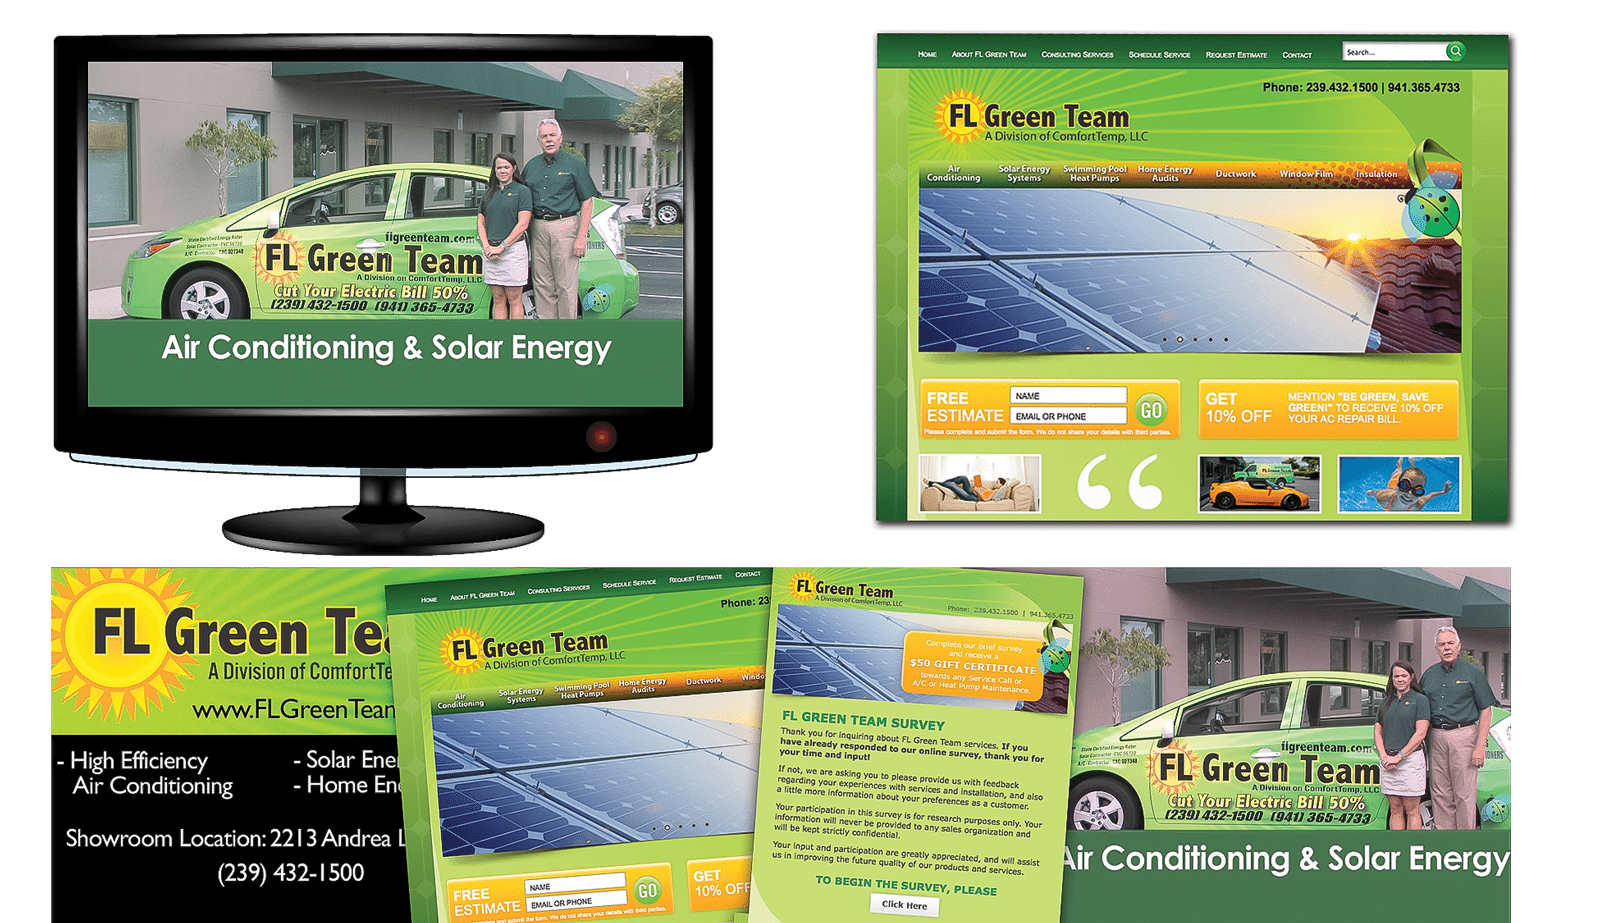 Contractor Marketing Agency - Contractor Marketing Communications for FL Green